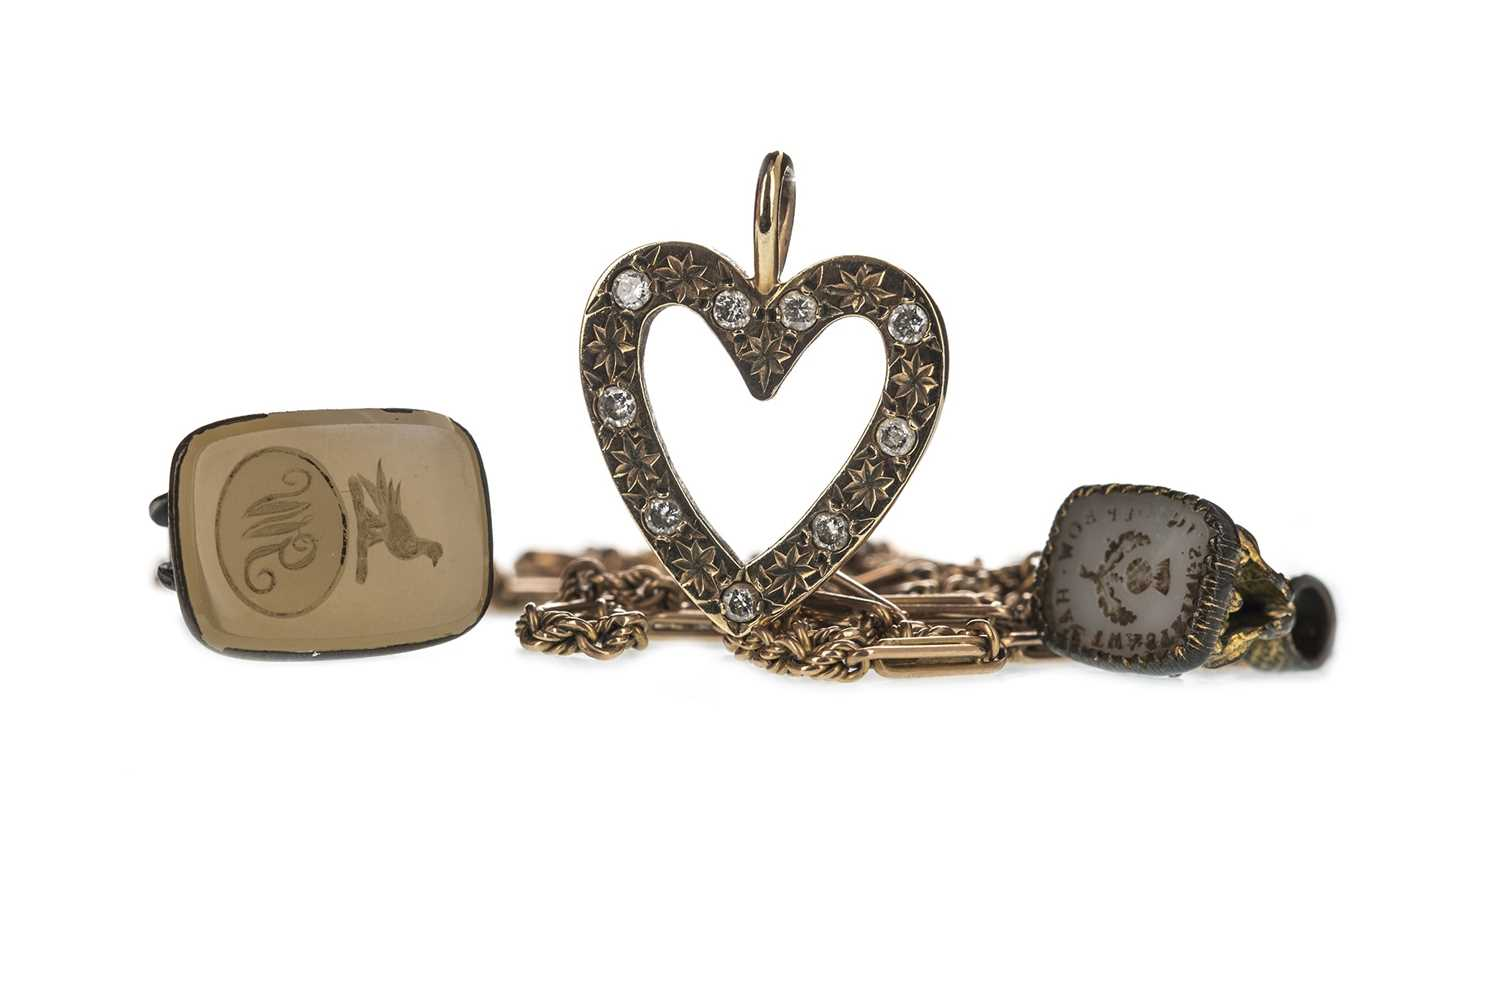 Lot 310-A DIAMOND HEART PENDANT, TWO SEAL FOBS AND A GUARD CHAIN